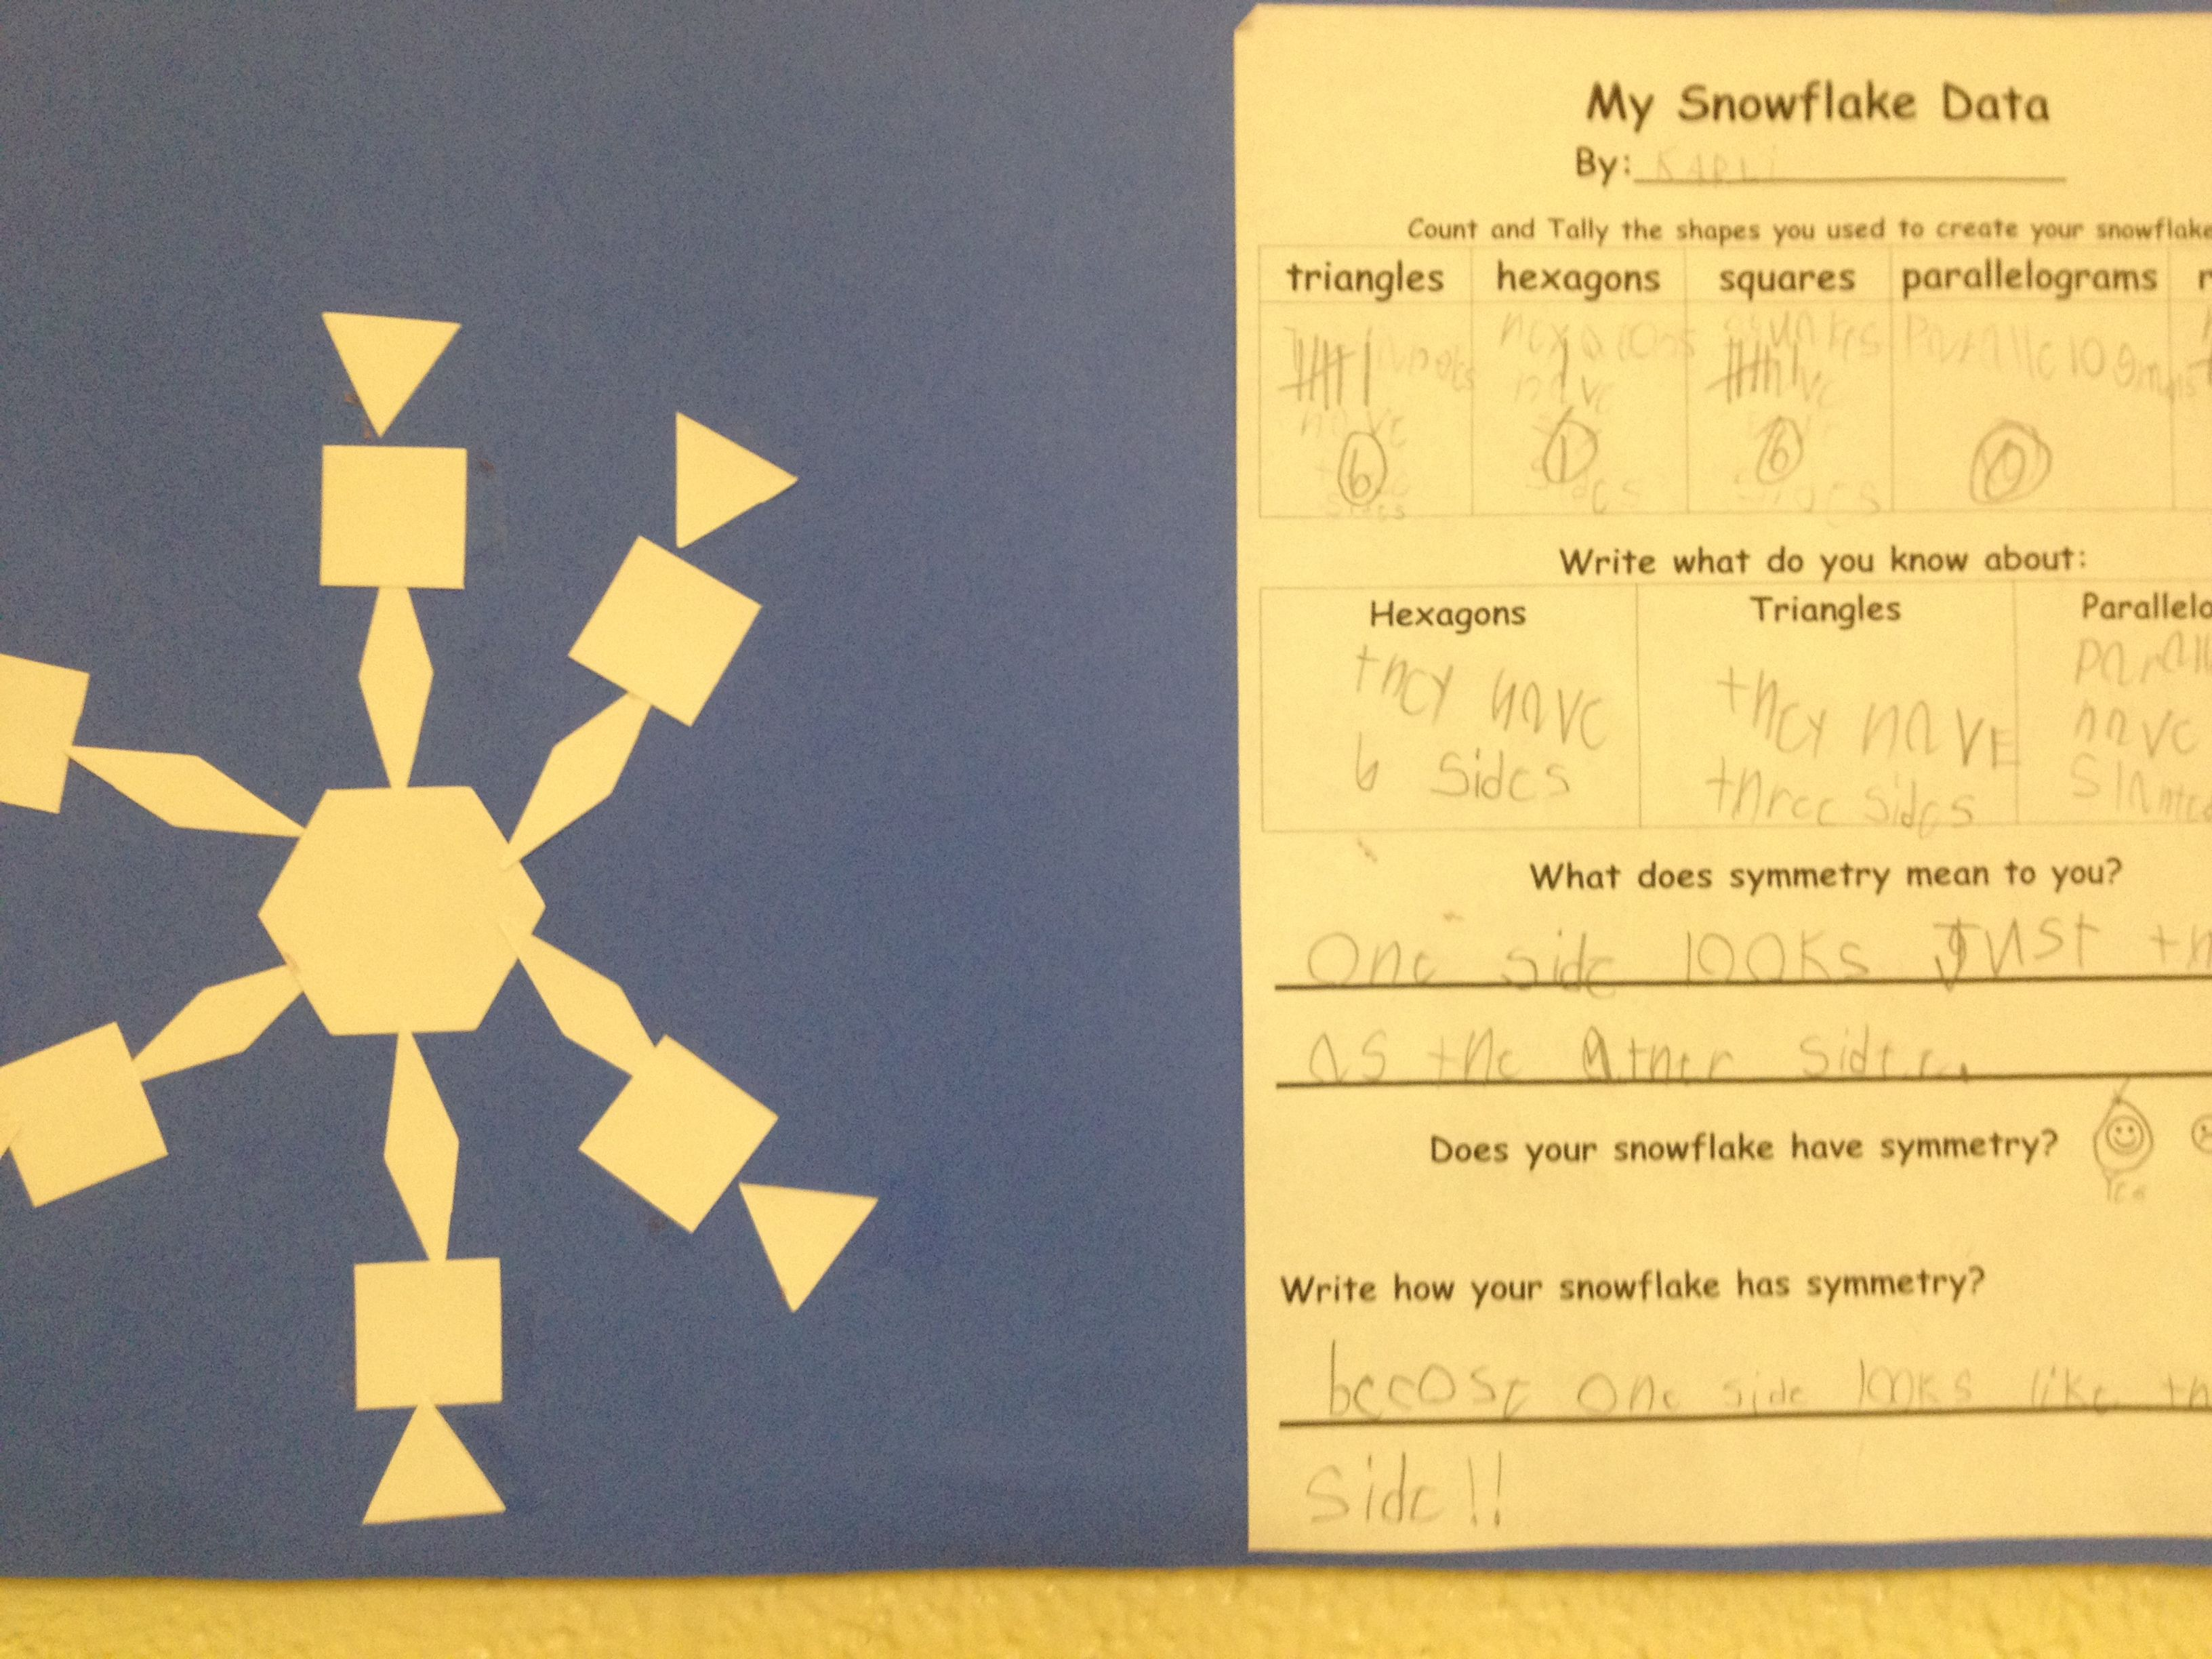 Symmetry Snowflakes Using Pattern Blocks Created In The